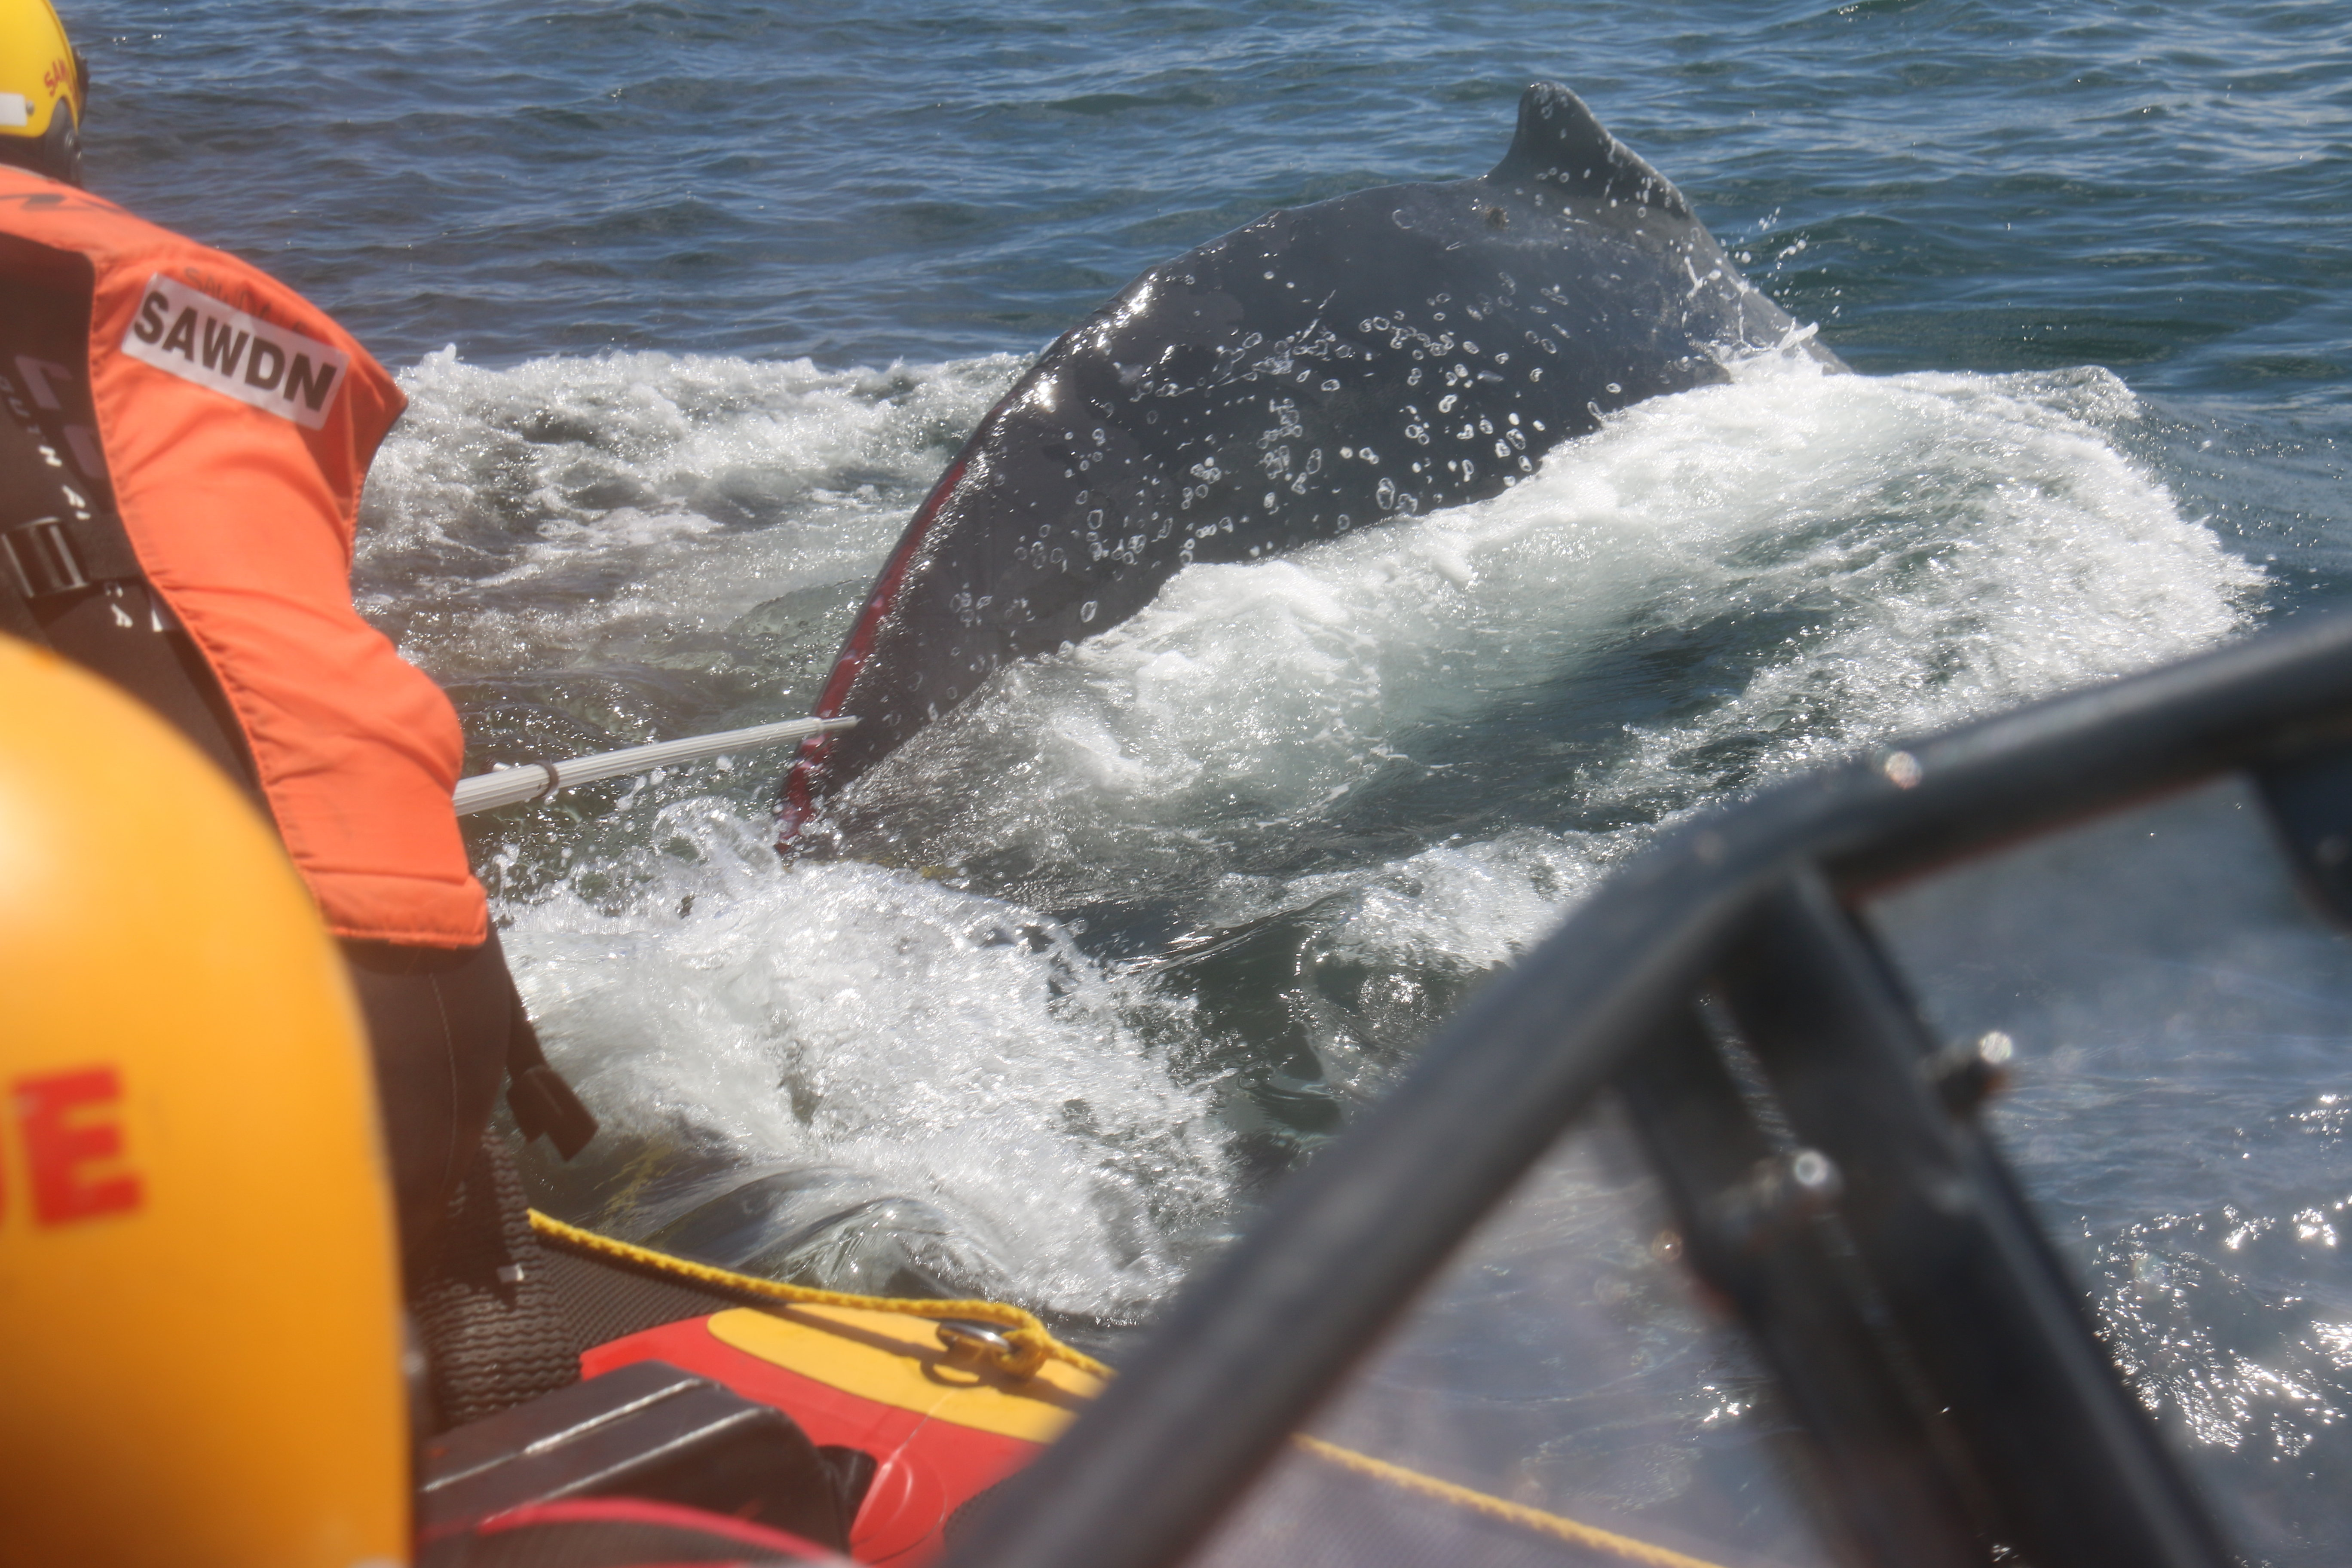 Pictures by SAWDN - show the operation to disentangle two Humpback whales today.